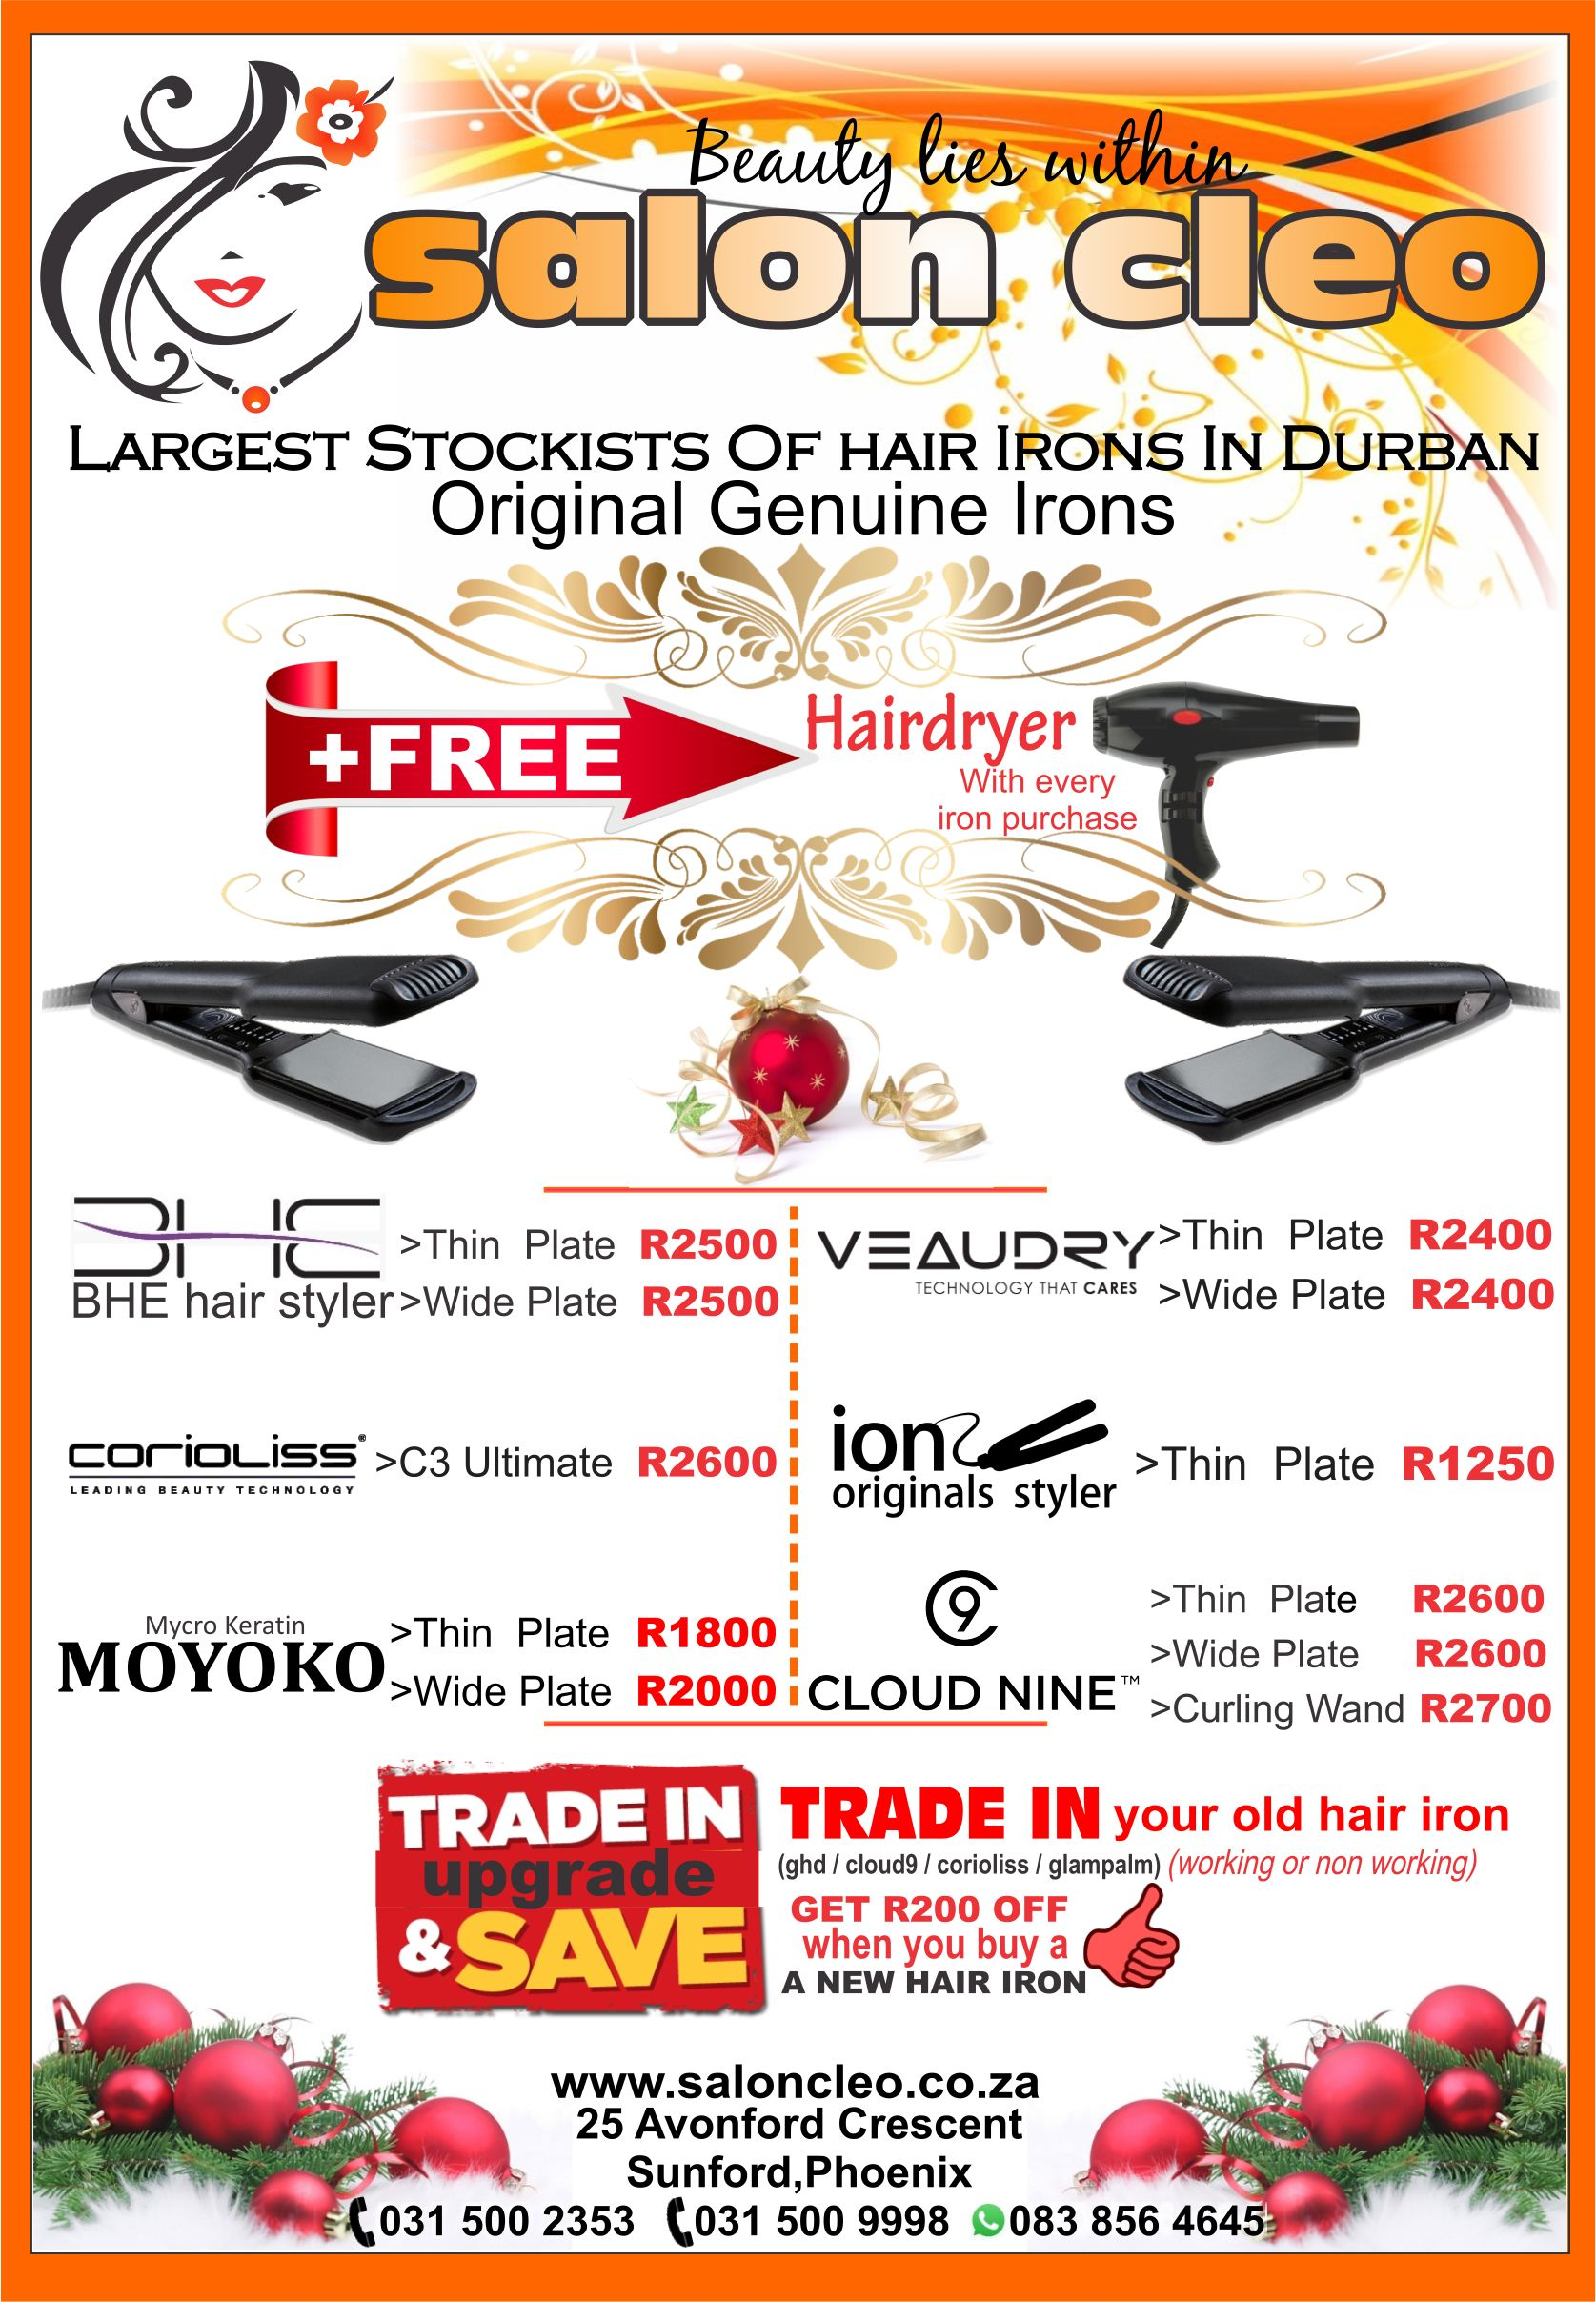 salon cleo christmas hair irons specials ghd cloudnine bhe corioliss glampalm  moyoko veaudry hair irons on christmas specials 0315009998 salon cleo  ghd cloud 9 bhe coriolliss veaudry hair iron stylers ion orginal hair iron straighteners salon cleo phoenix 0315002353 ghd hair straighteners bhe styers veaudry hair iron corioliss hair irons veaudry irons salon cleo phoenix veaudry salon cleo durban 0315009998